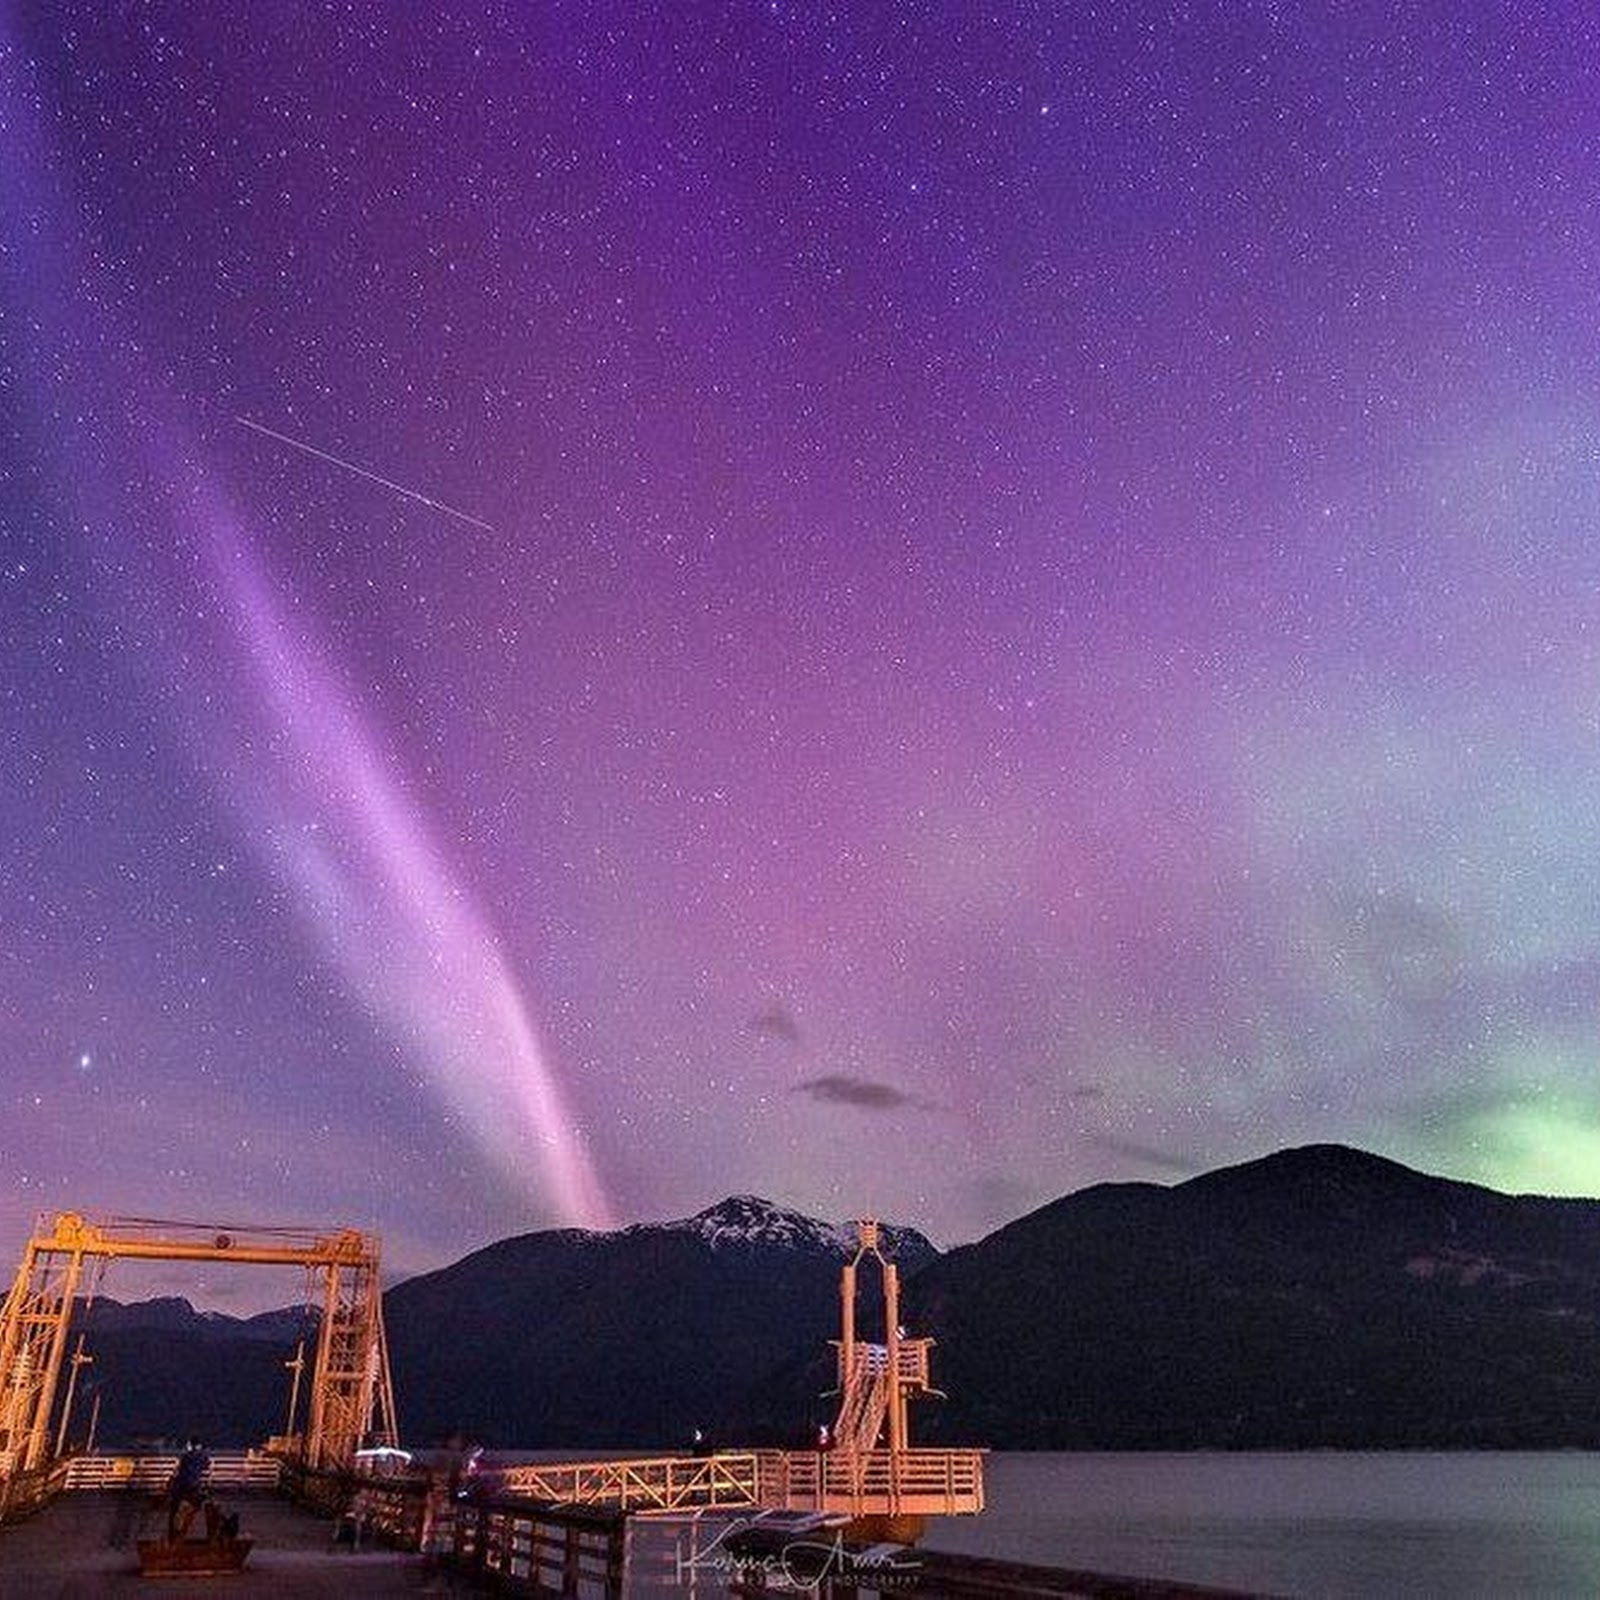 A New Atmospheric Phenomenon Called Steve